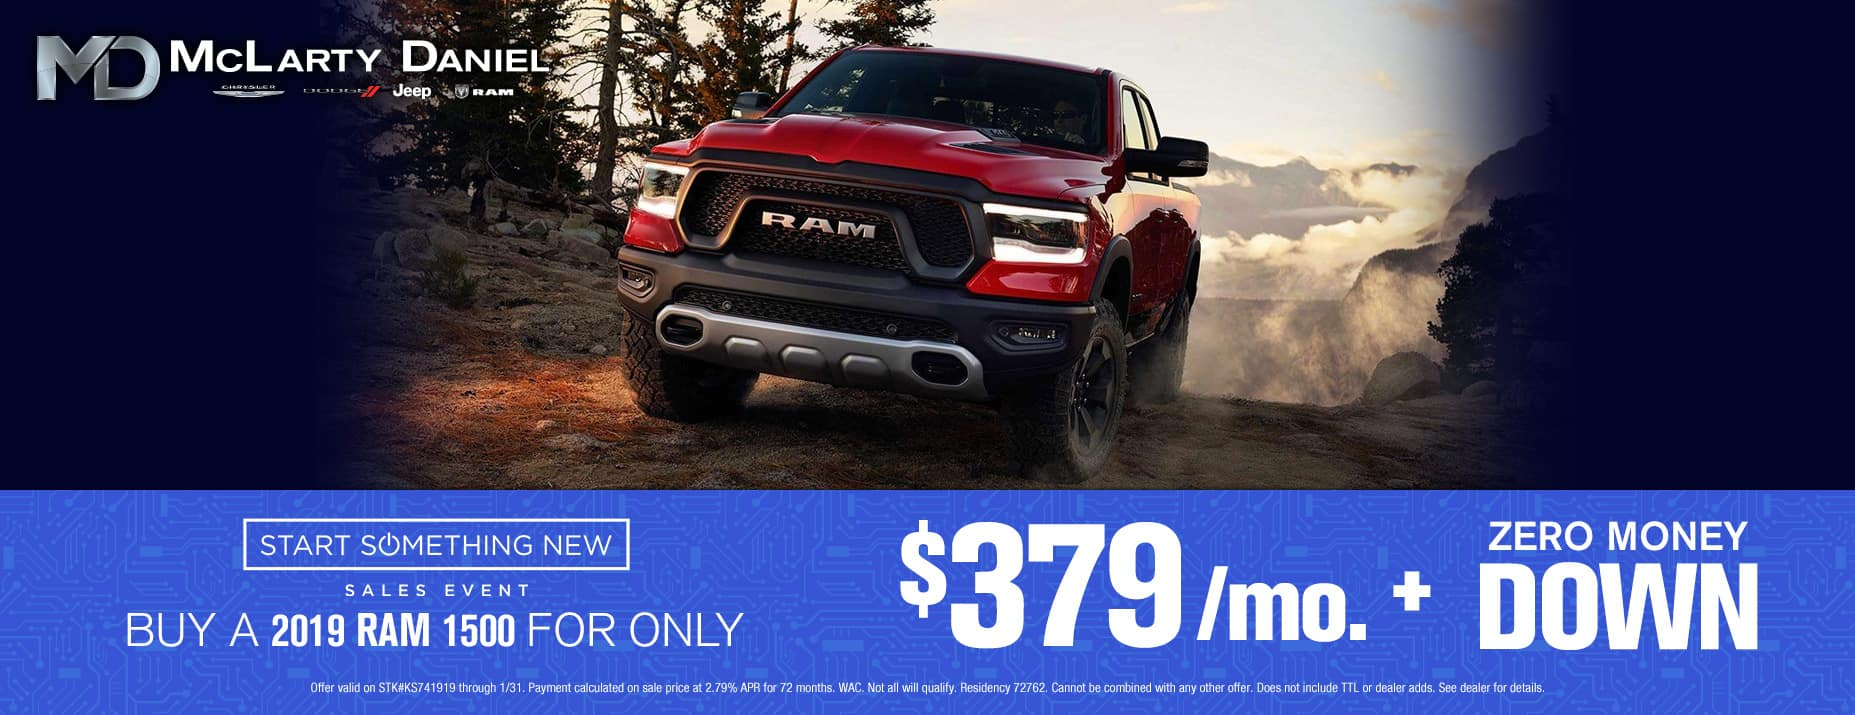 Buy a 2019 RAM 1500 for only $379/mo with no money down!